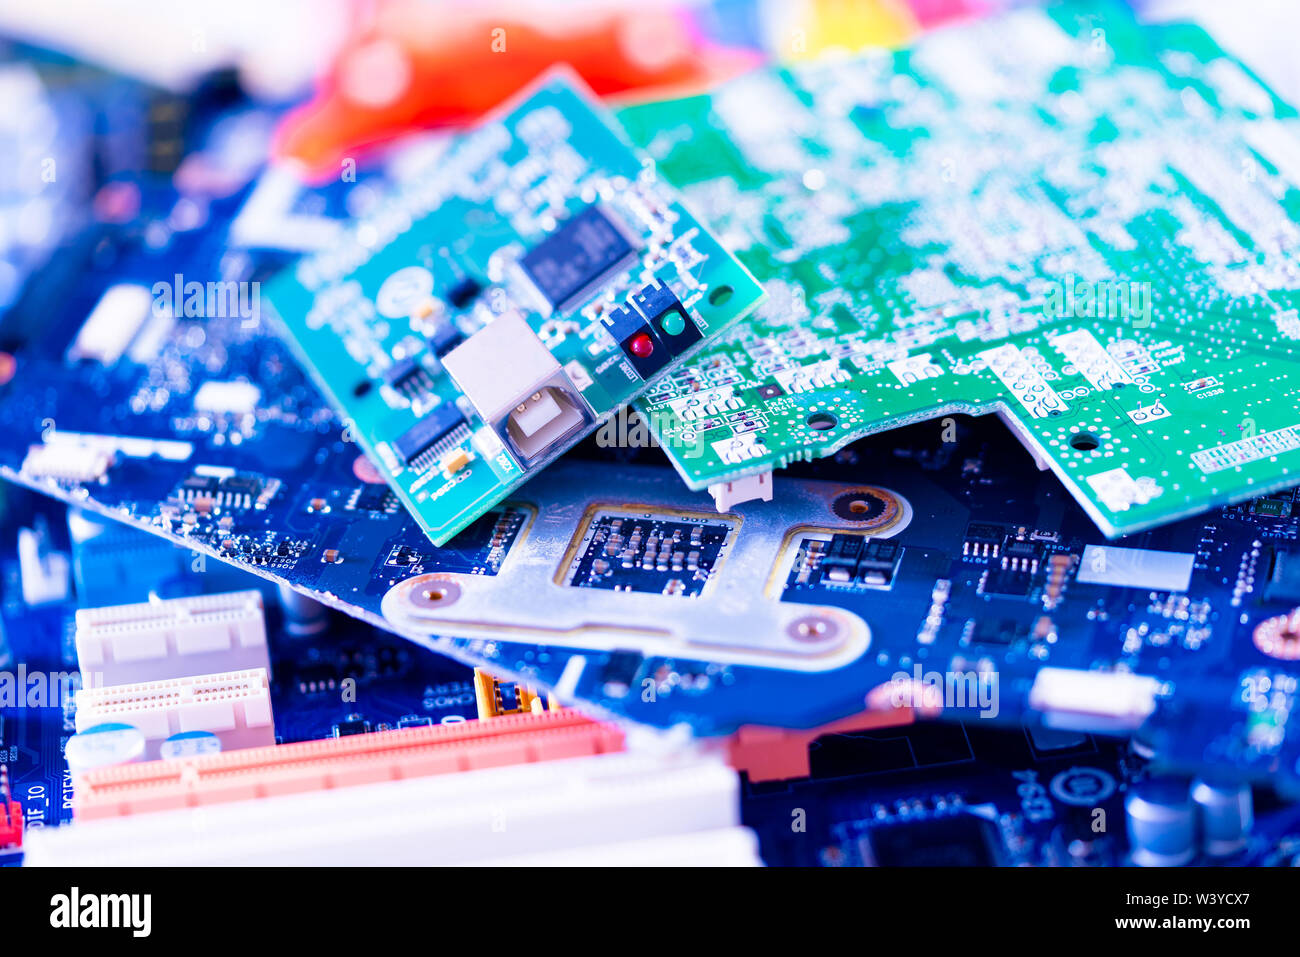 electronic PCB garbage as background from recycle industry and old consumer devices - Stock Image